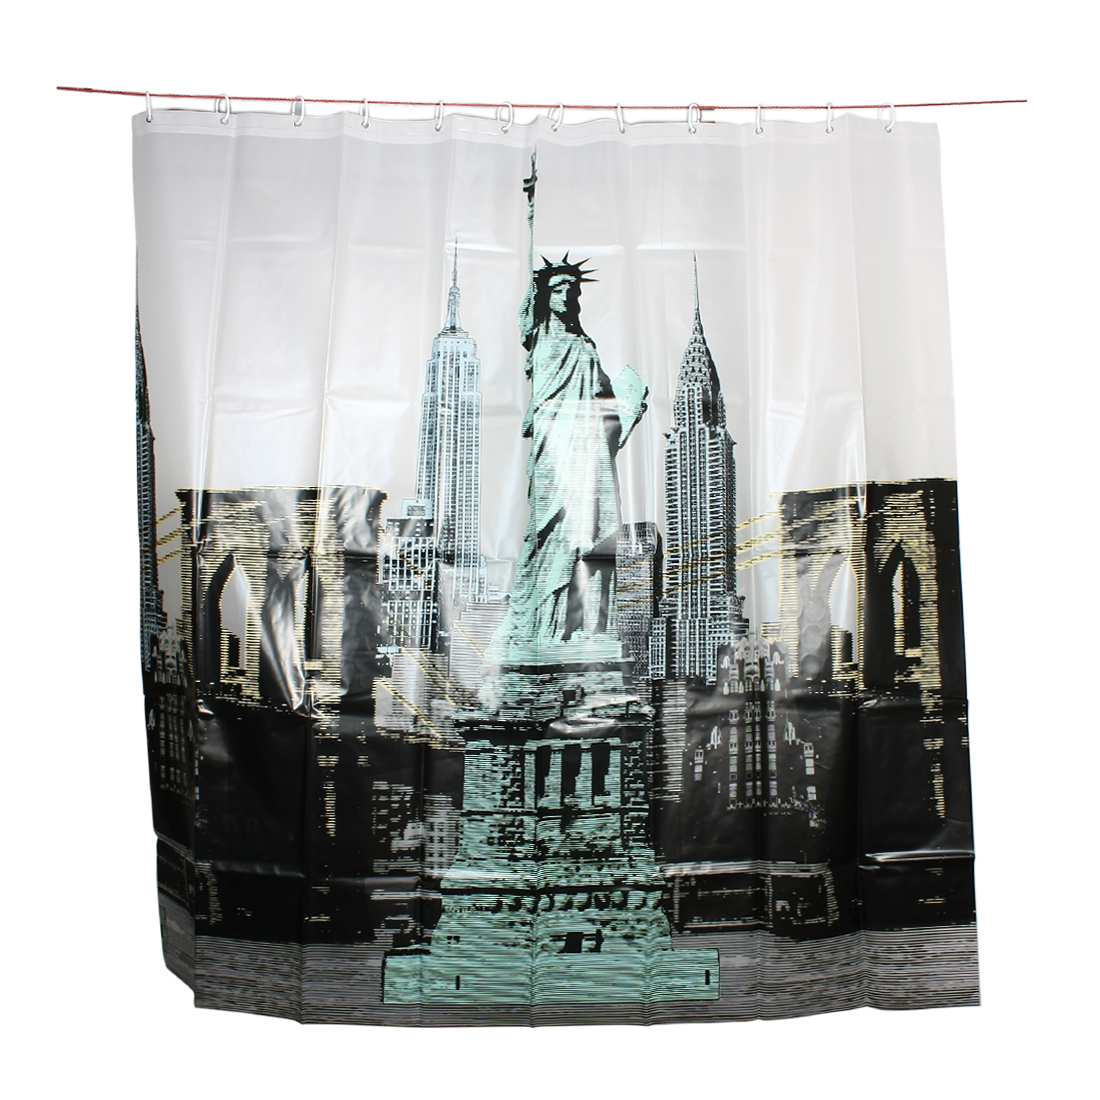 Modern Design Statue of Liberty Pattern Shower Curtain w 12 Hook Rings 180x180cm